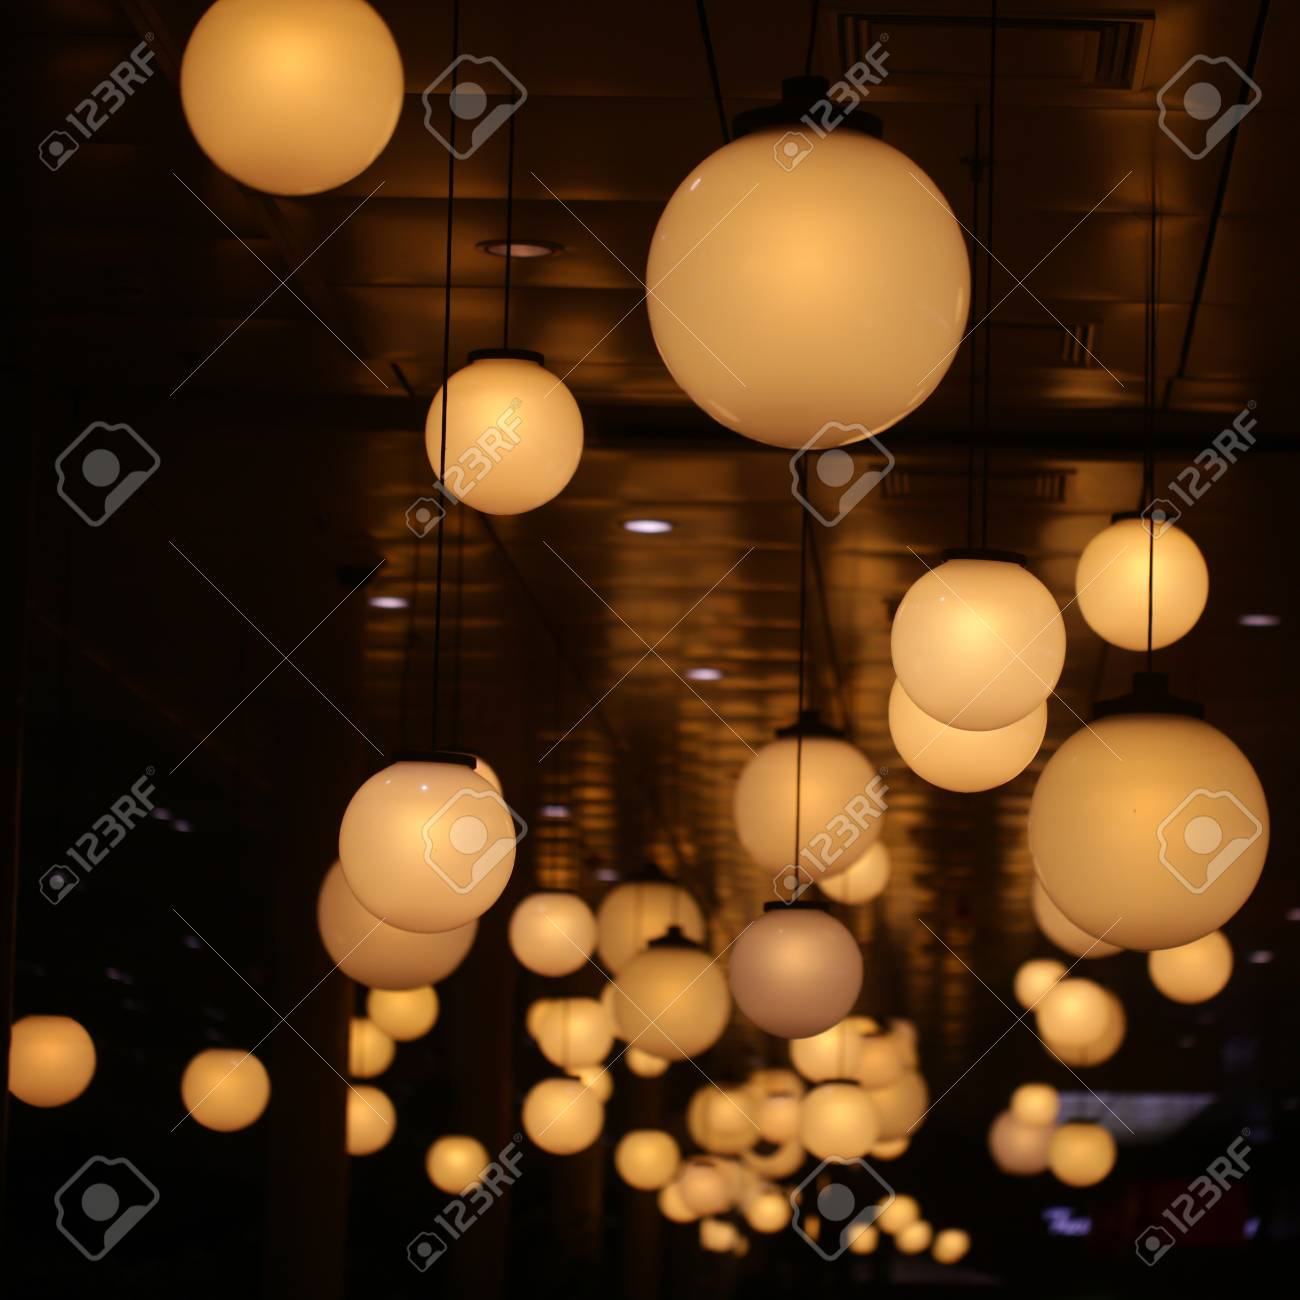 Ceiling lights of spherical shape on dark background lighting